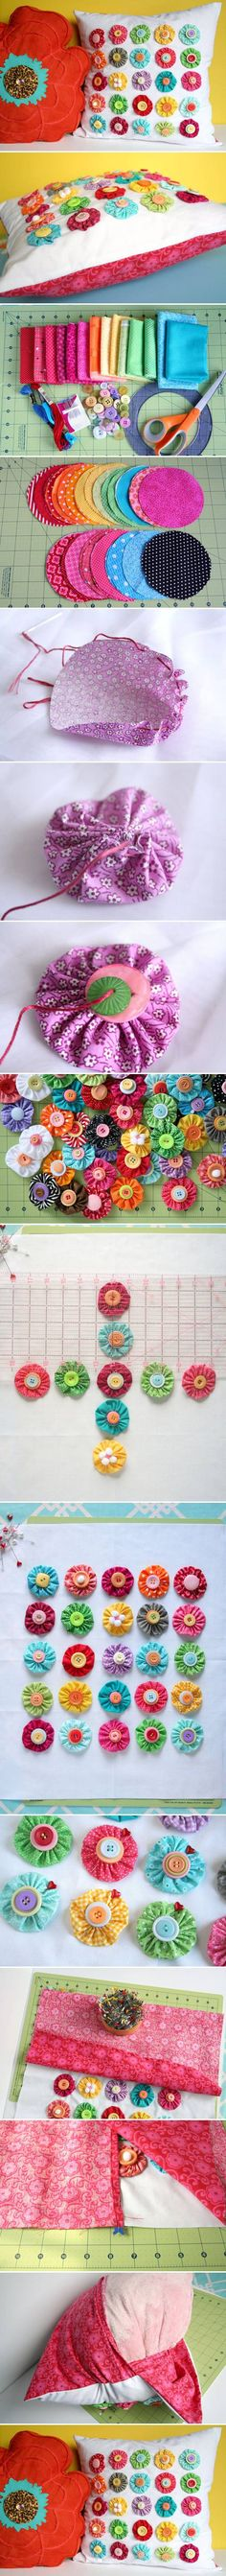 DIY Fabric Decorative Flowers